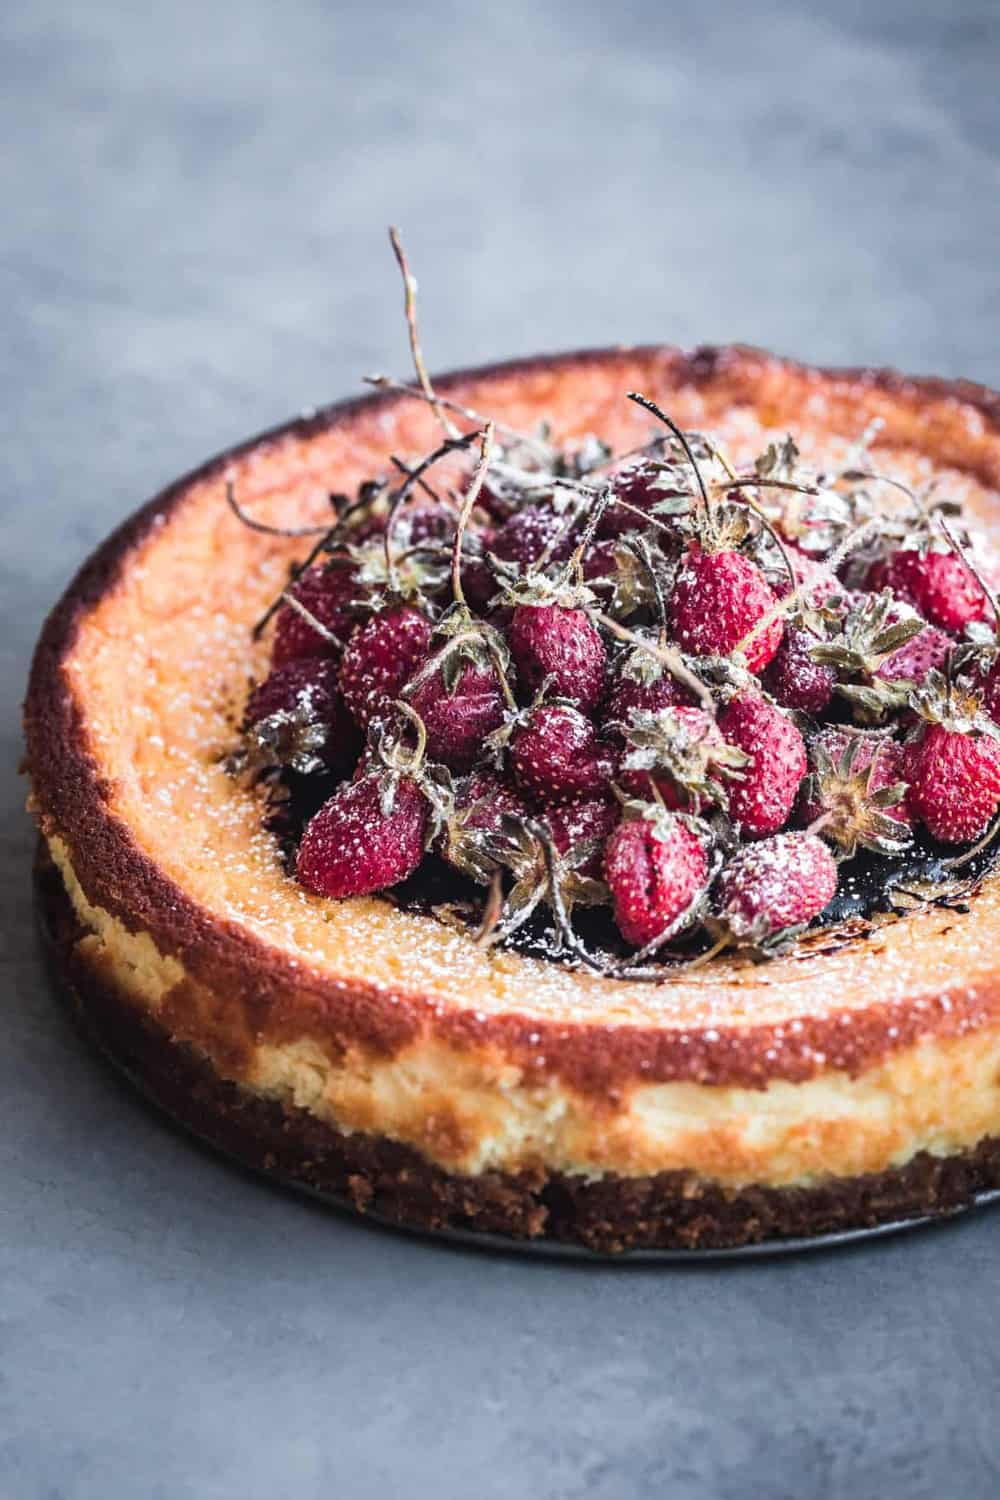 Mascarpone Cheesecake with balsamic roasted long stemmed strawberries, out of the spring form pan, 45 degree angle shot.